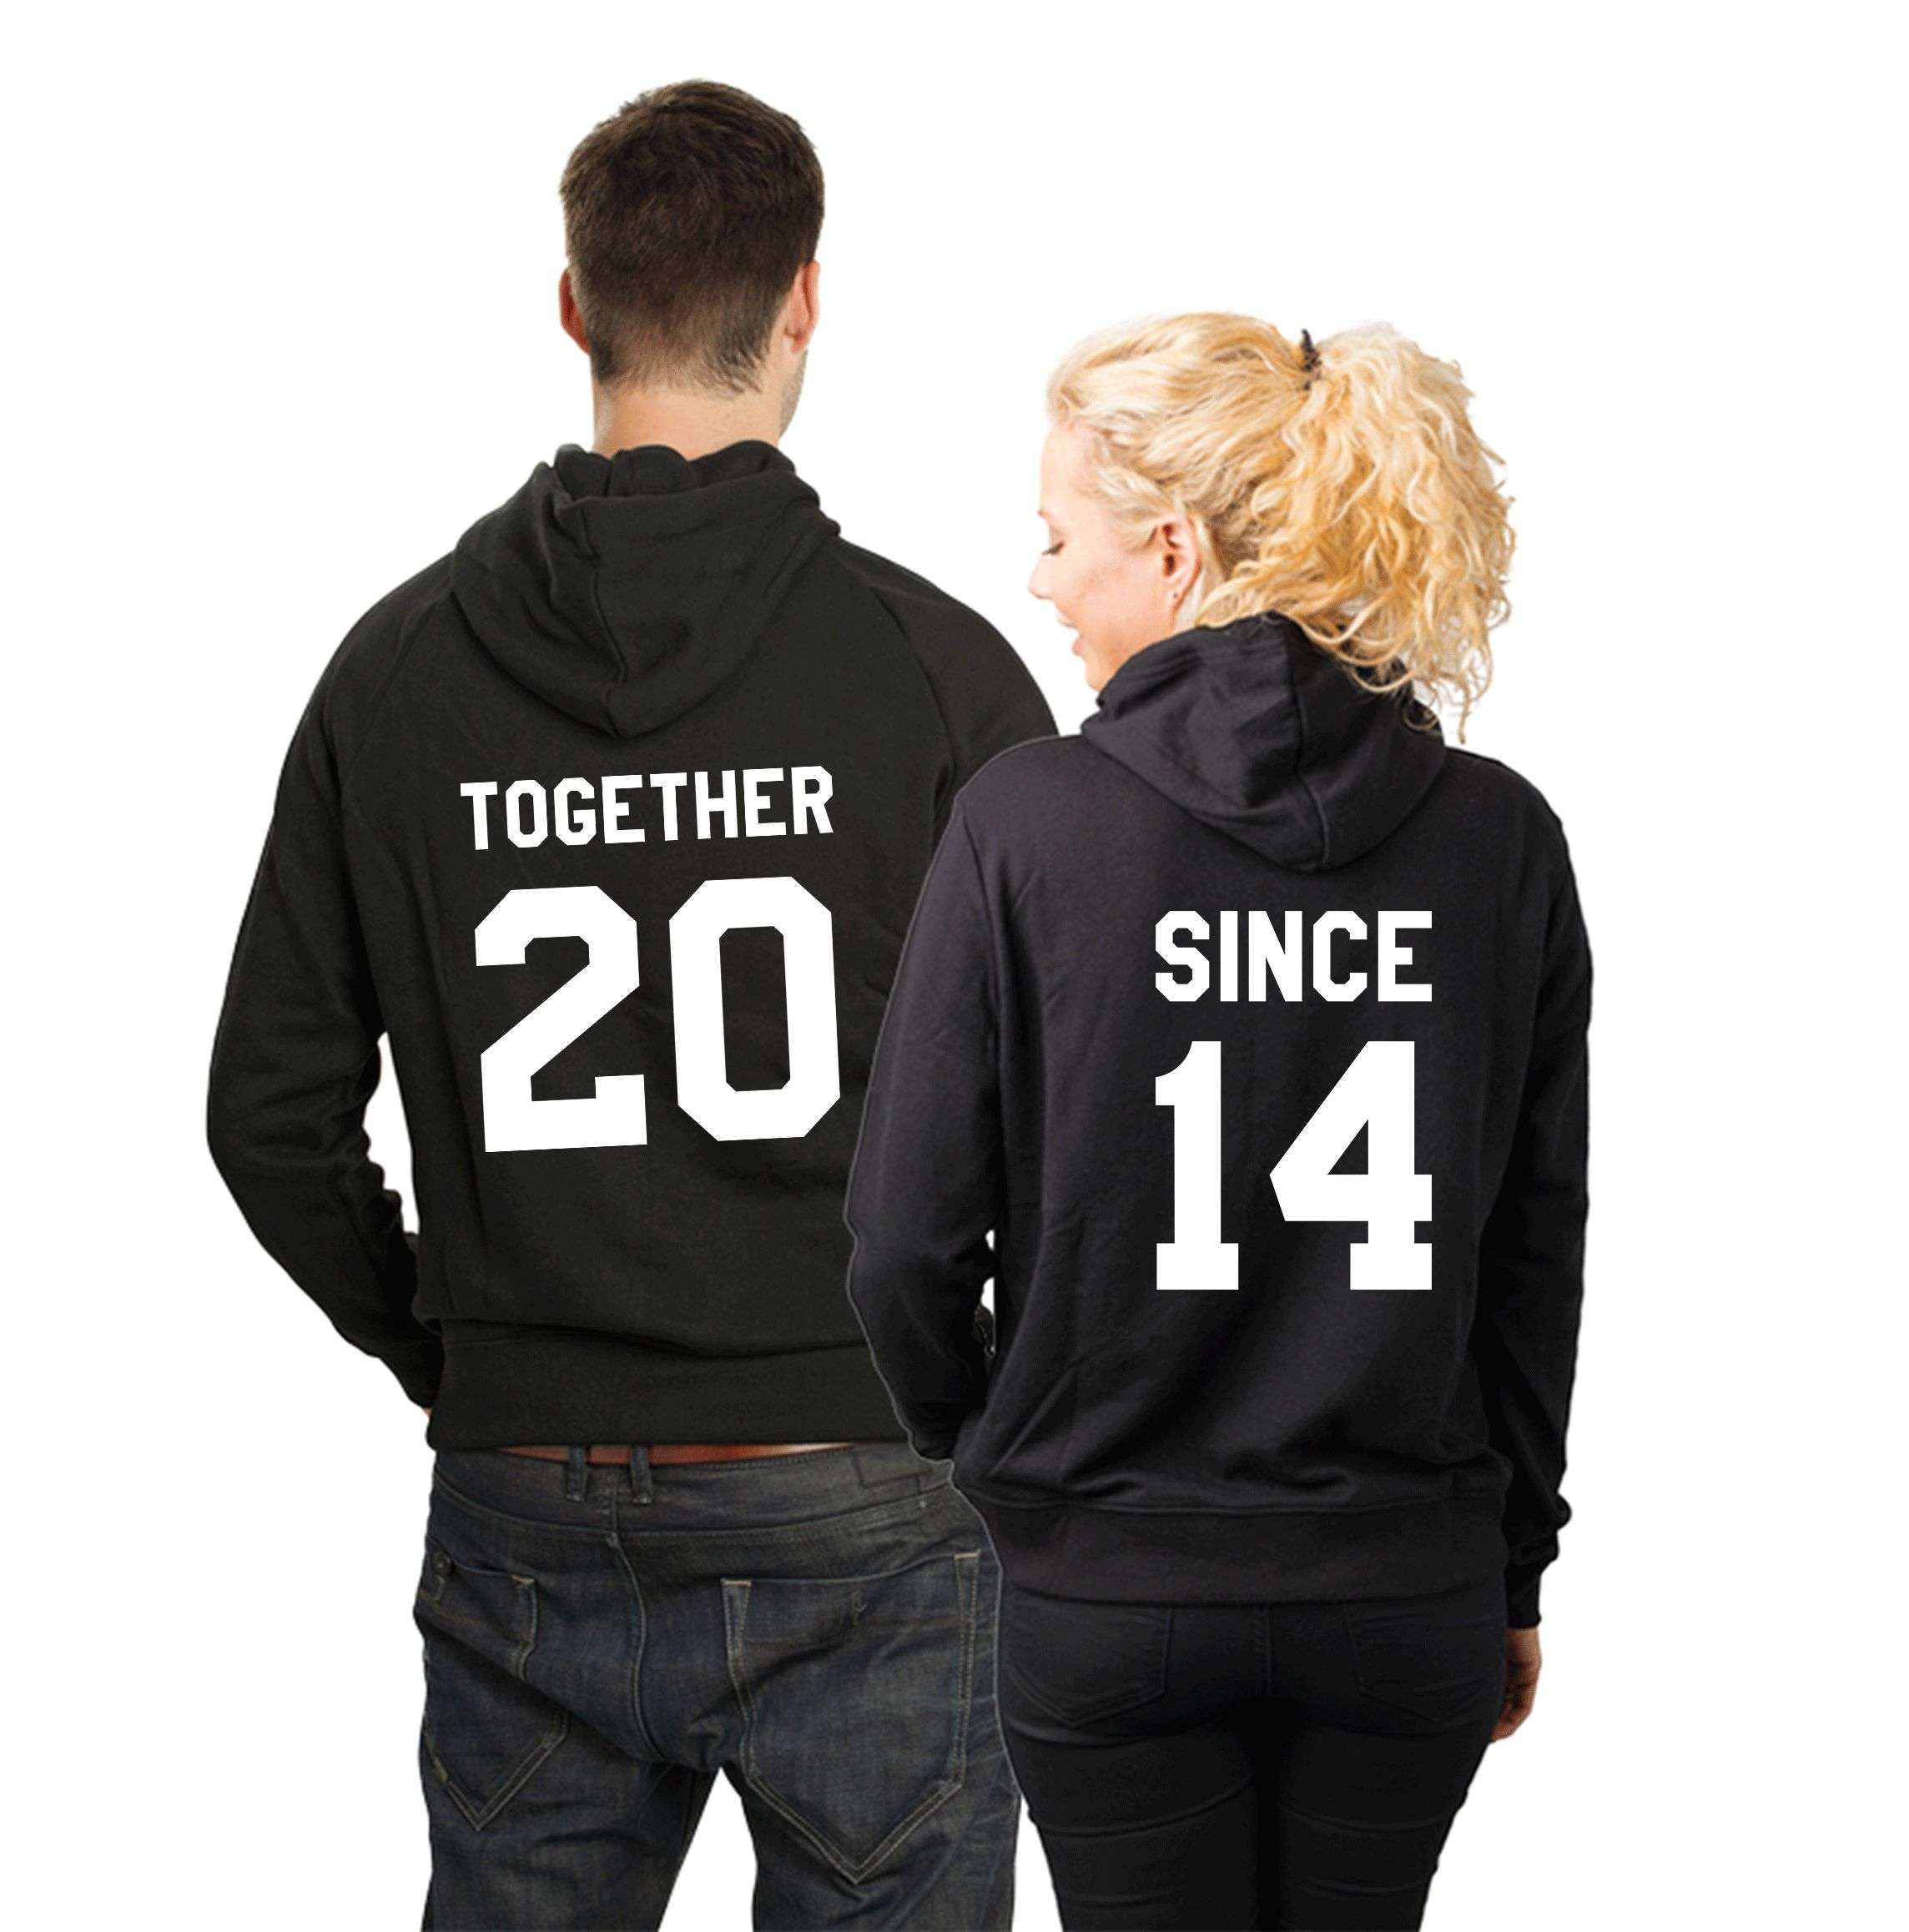 4a9177a675 Together Since Hoodie, Matching Couples Hoodies